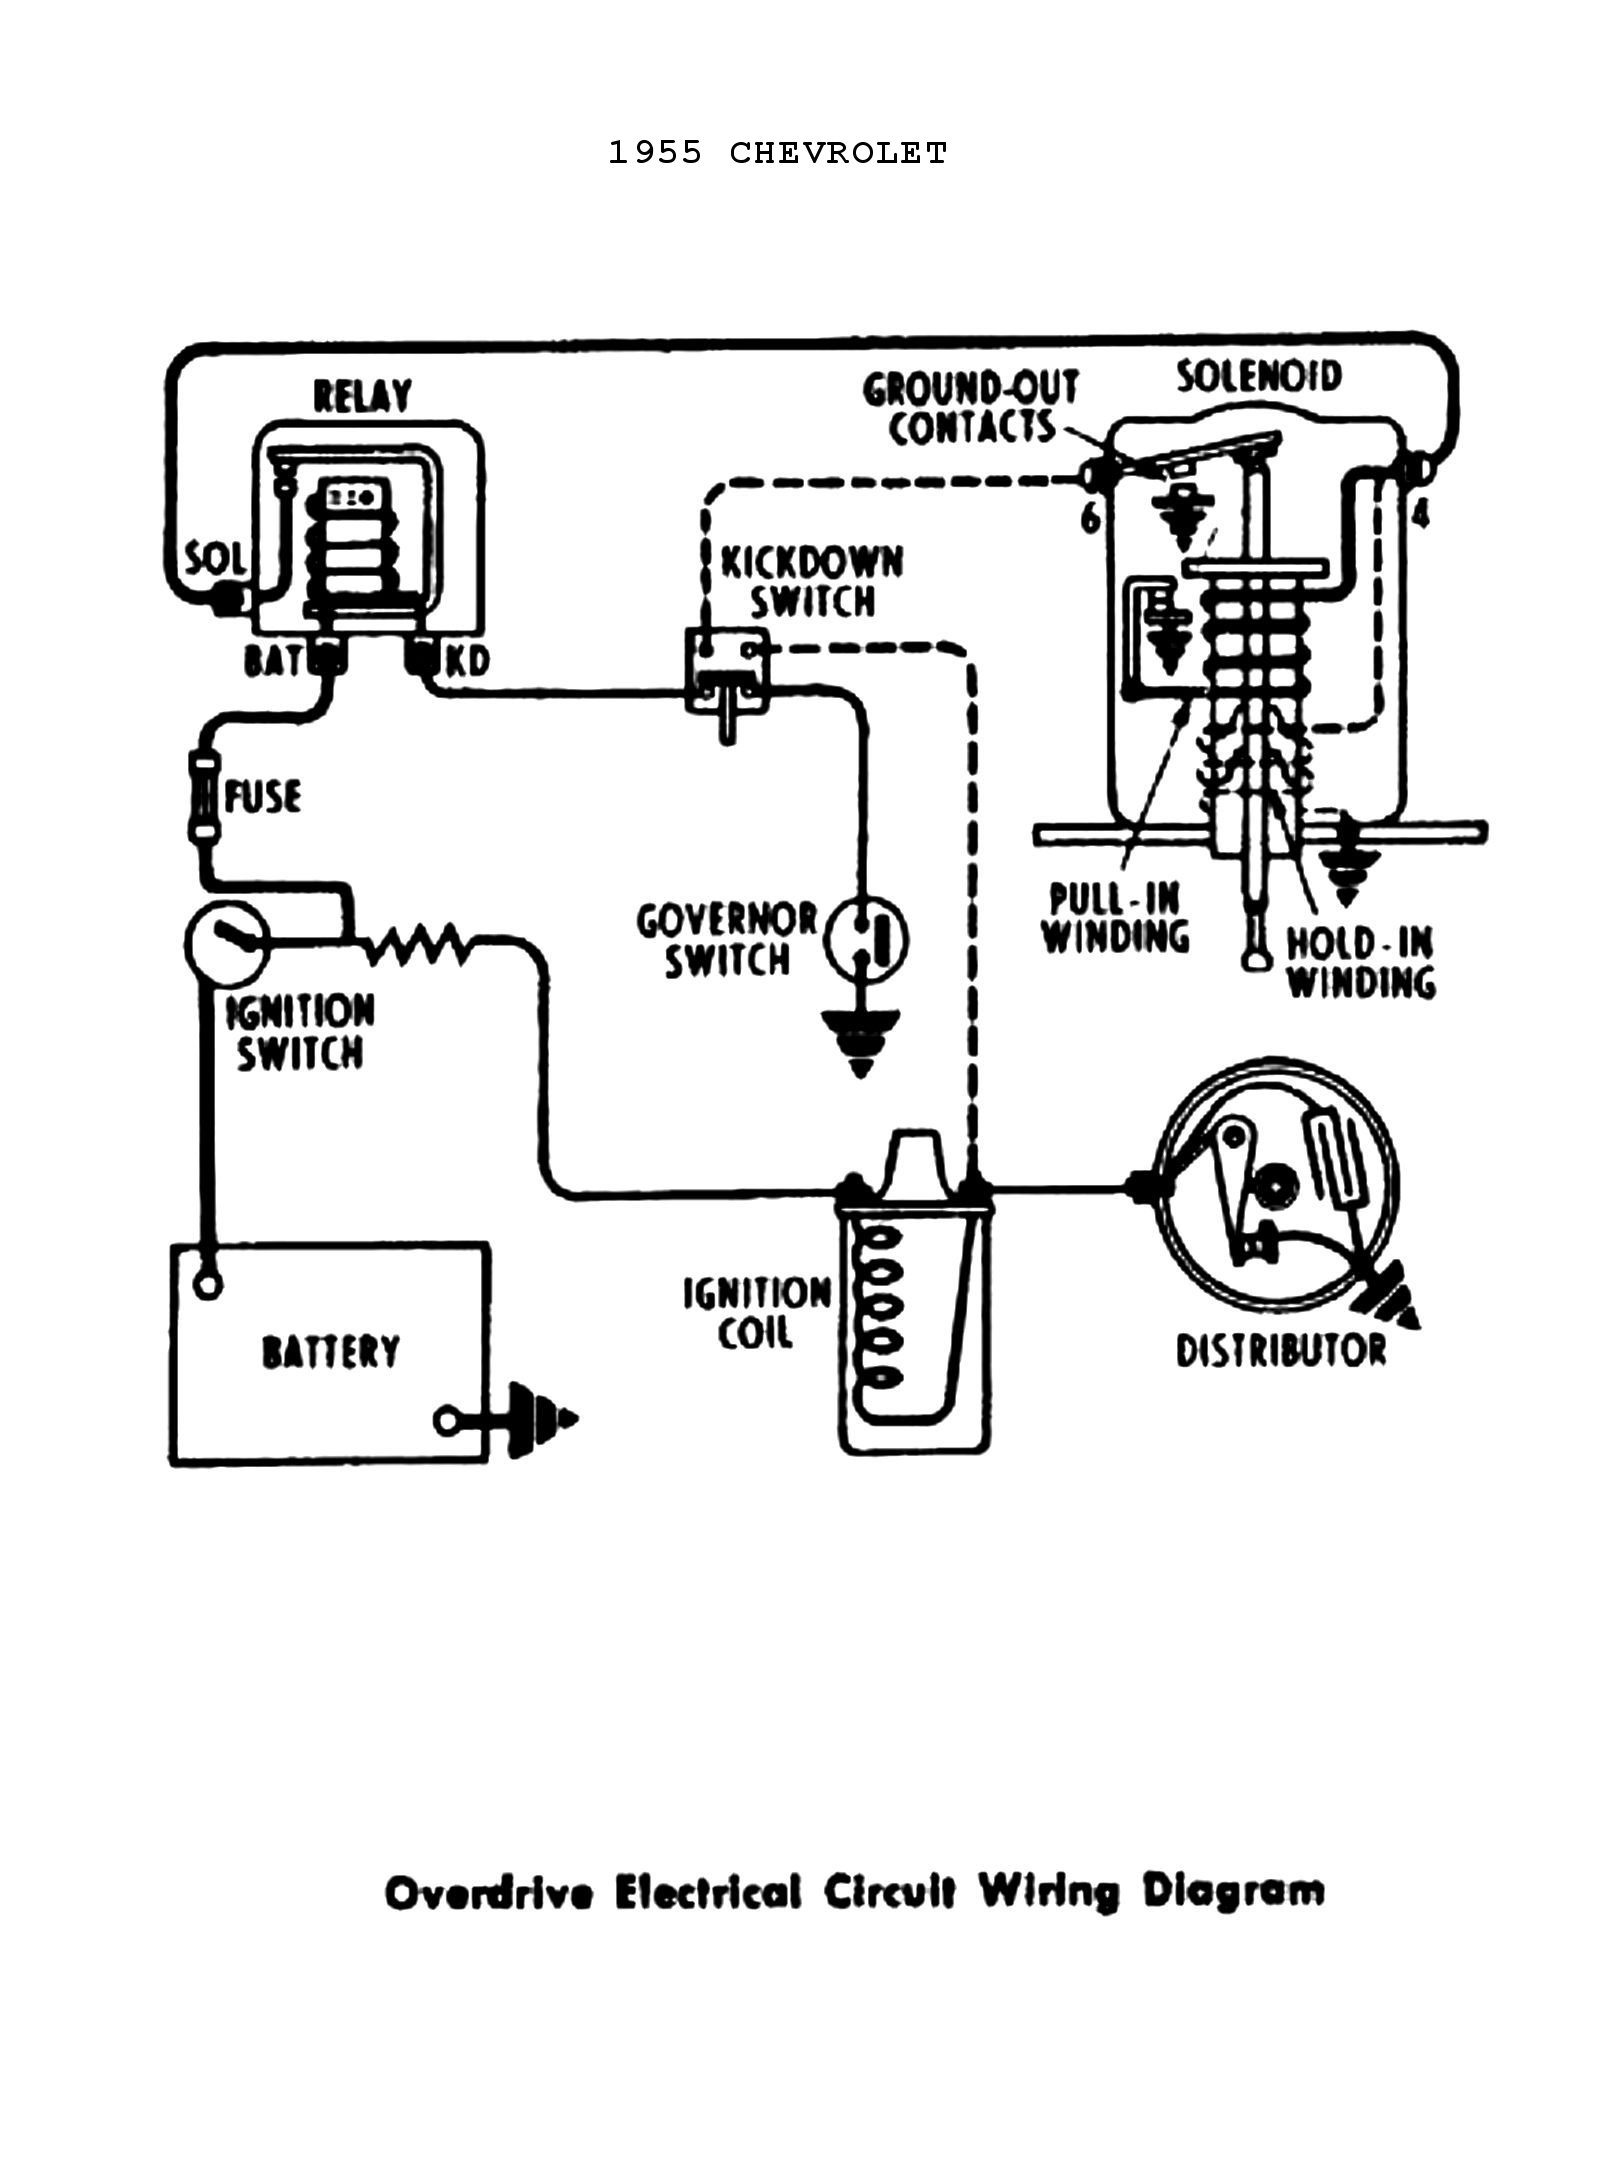 55odtrans1 chevy wiring diagrams chevrolet ignition wiring diagram at fashall.co